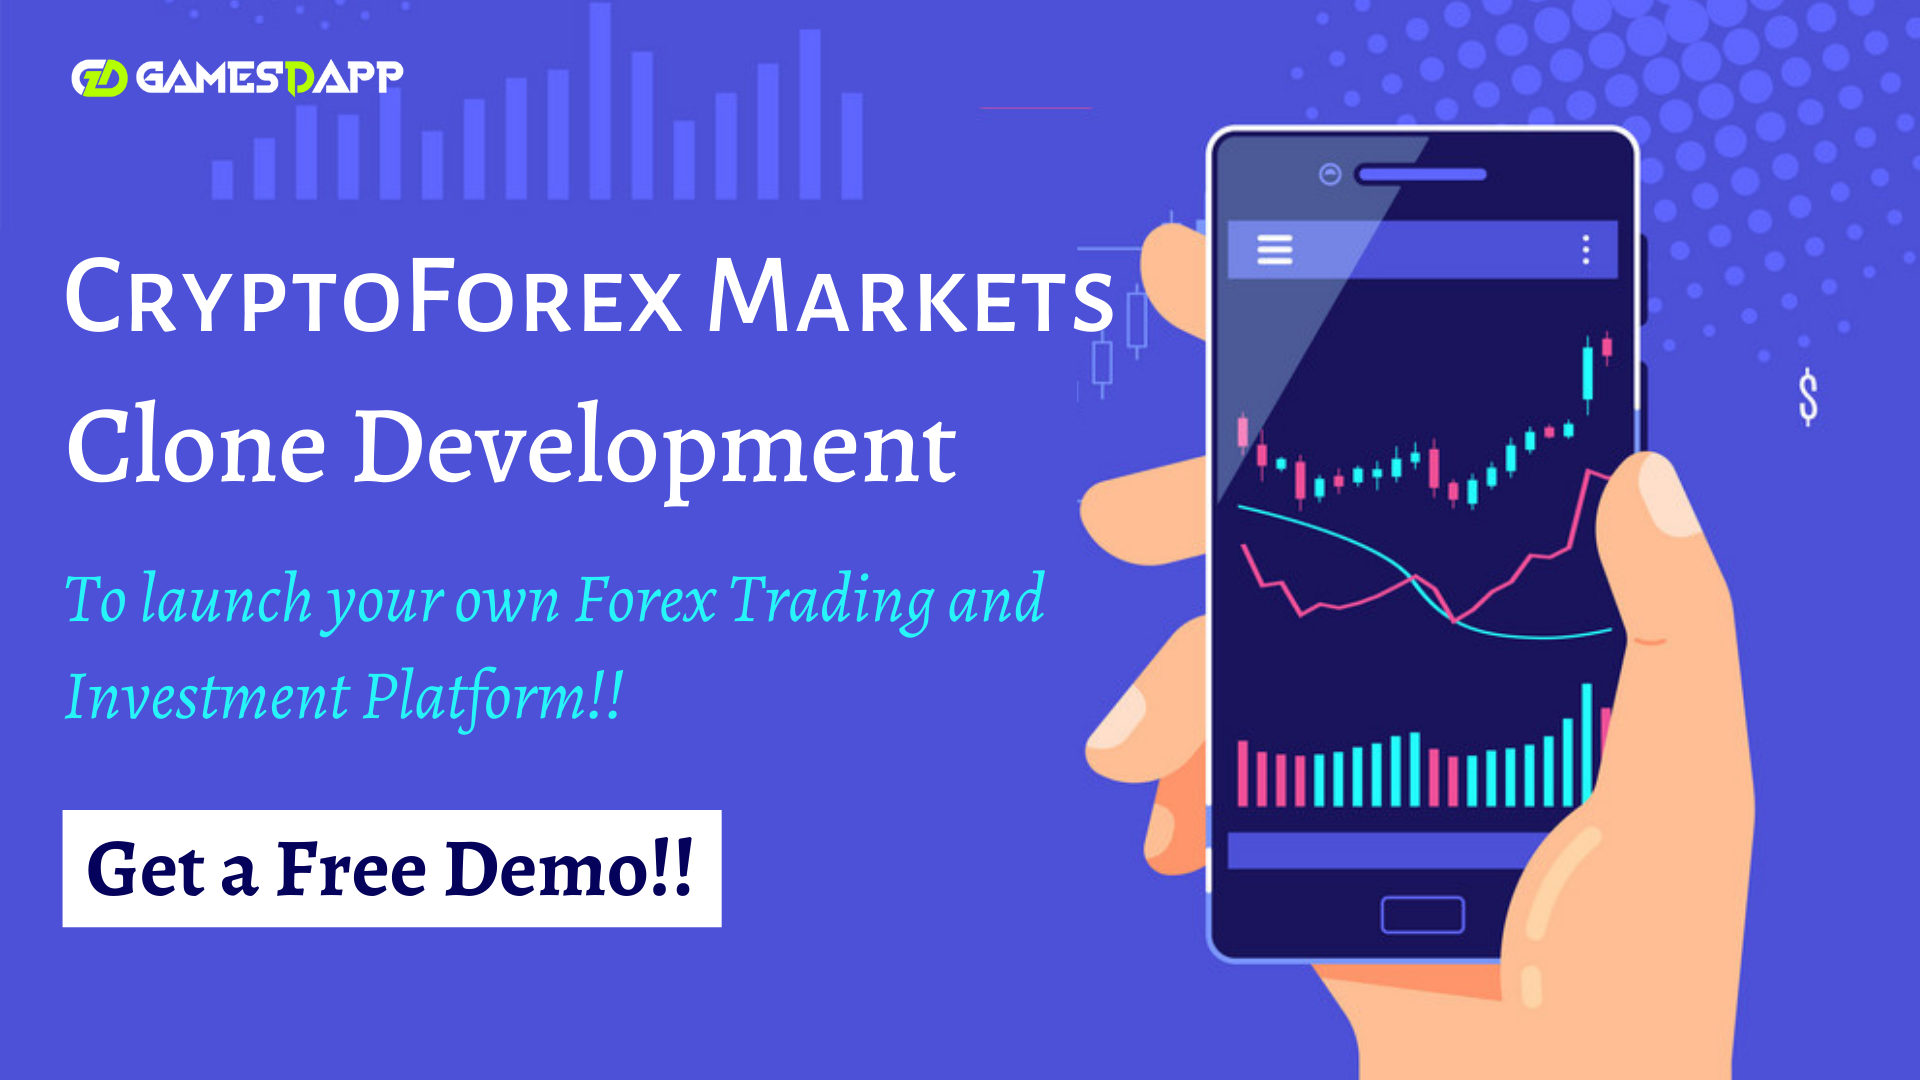 CryptoForexmarkets Clone Development - To launch your own Forex Trading and Investment Platform